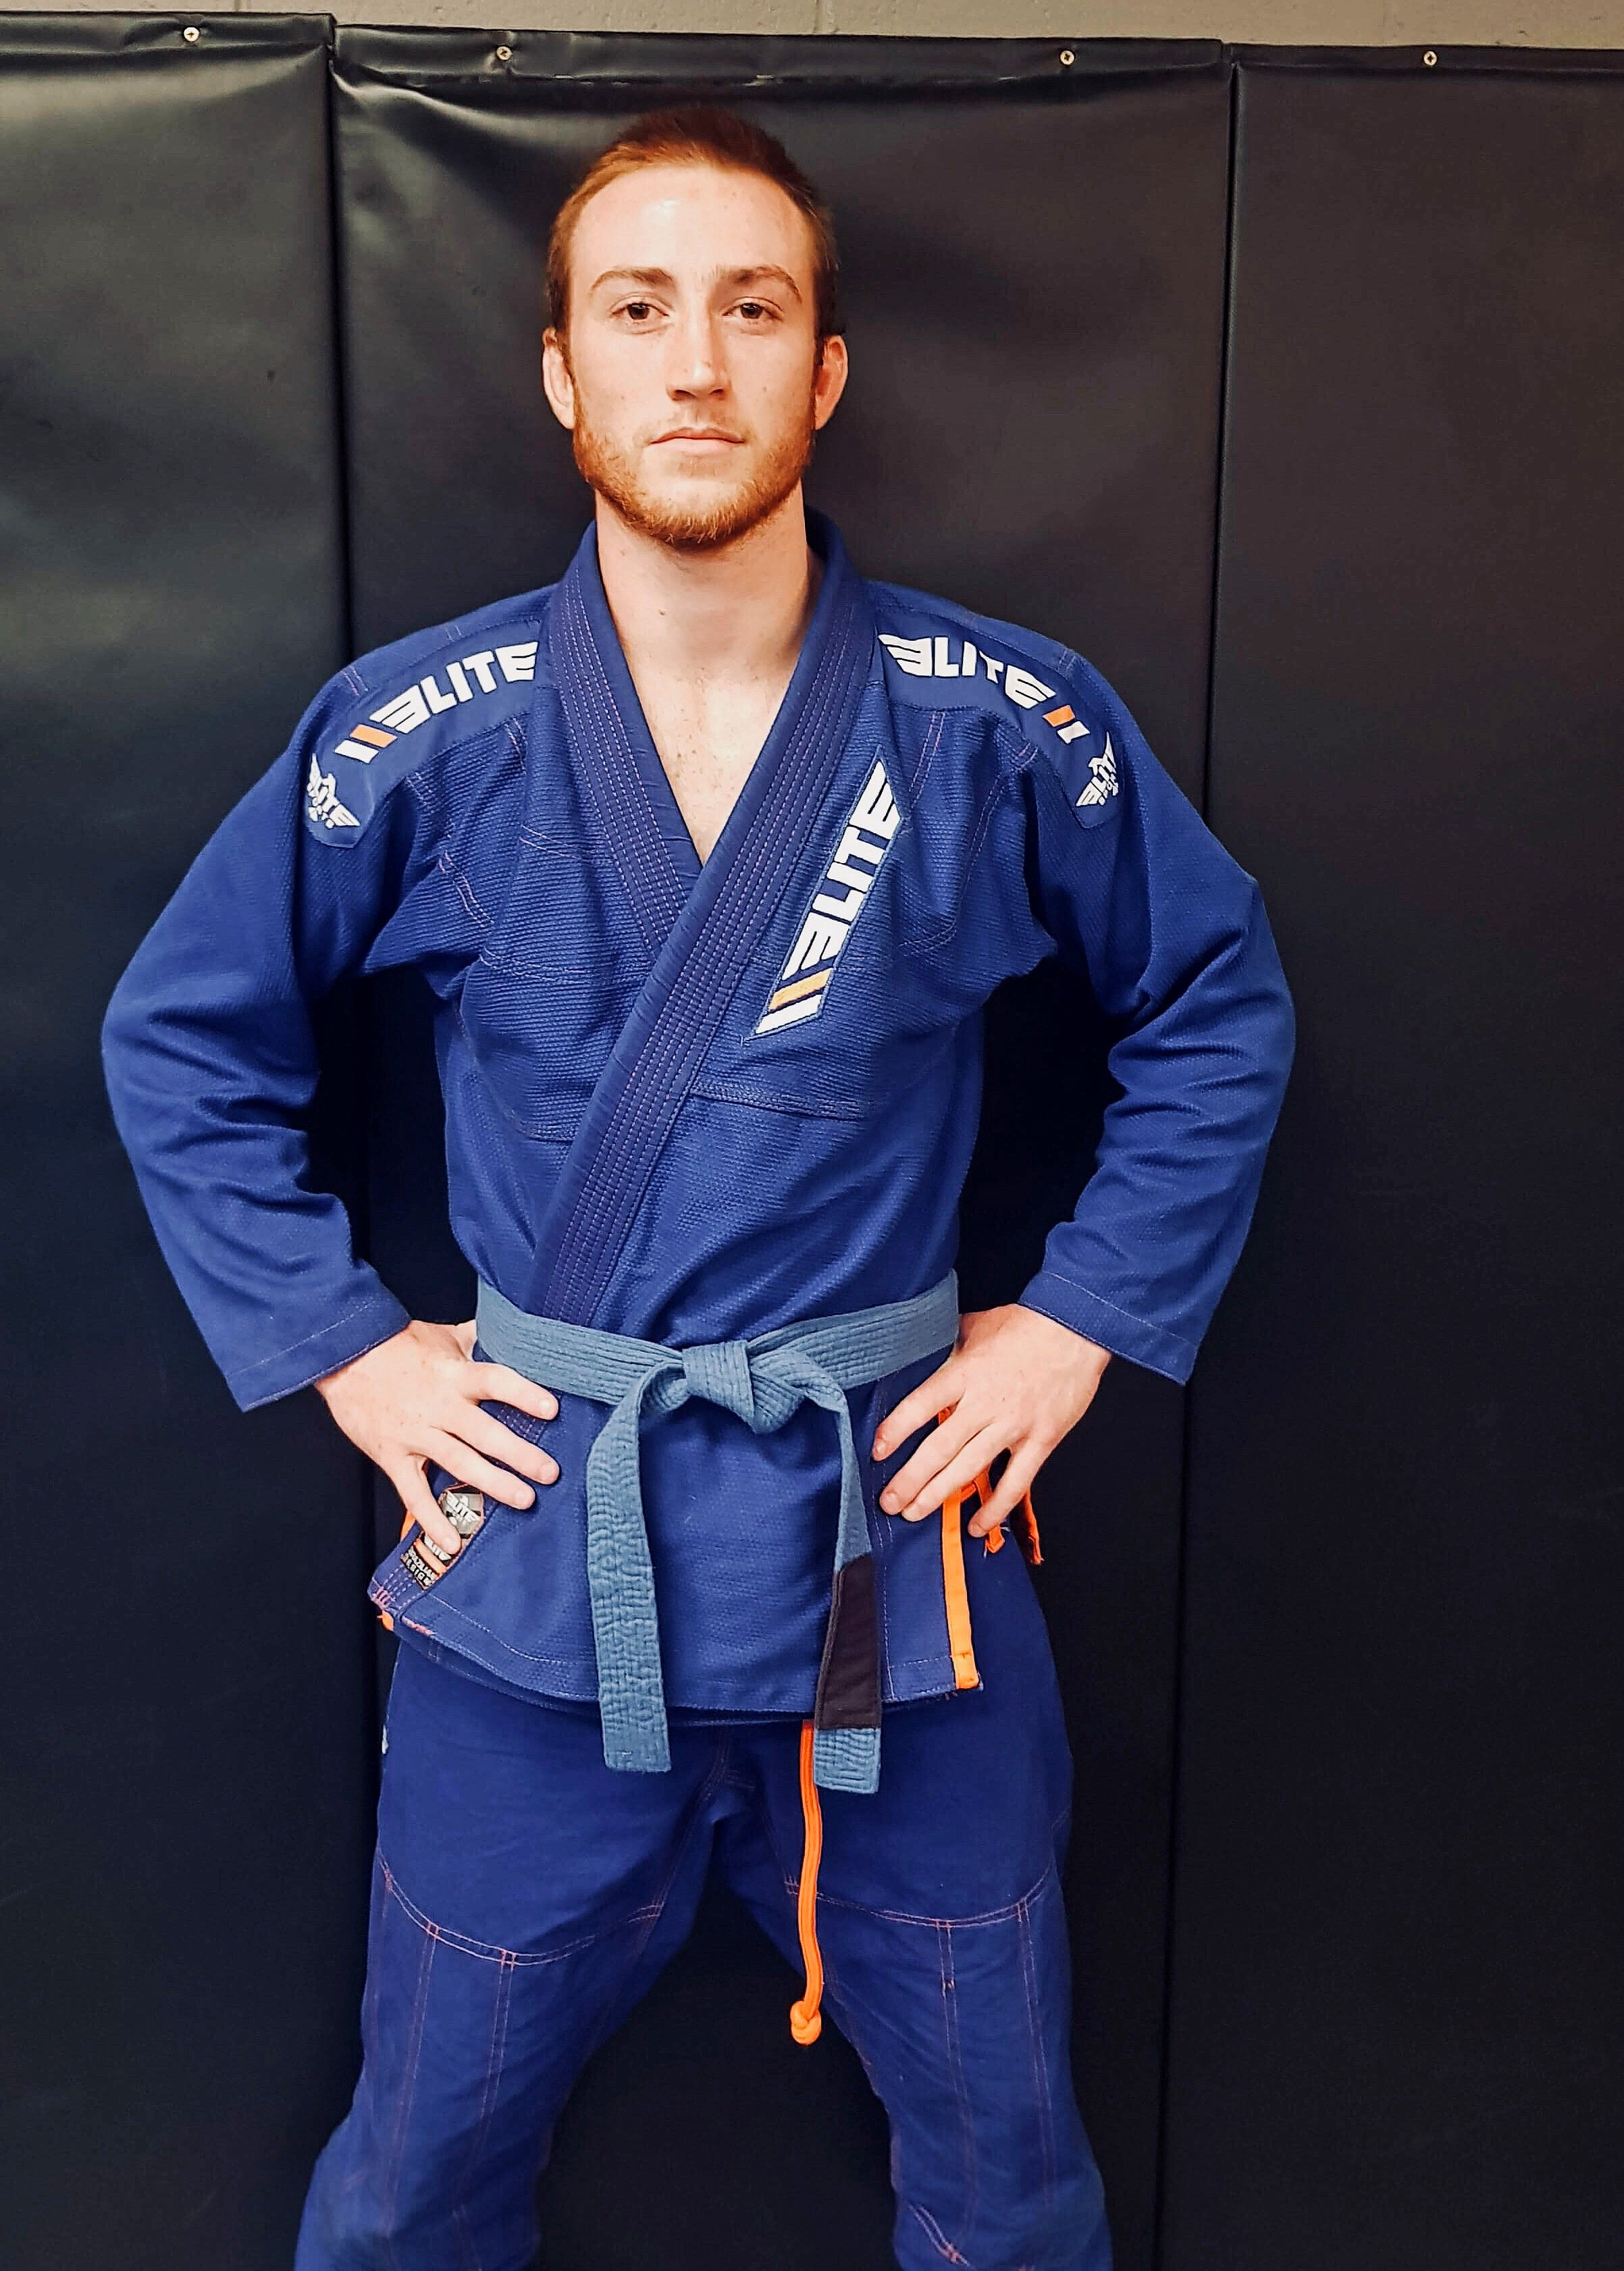 Elite Sports Team Elite Bjj Fighter Ashton Riddle-Johnston  Image2